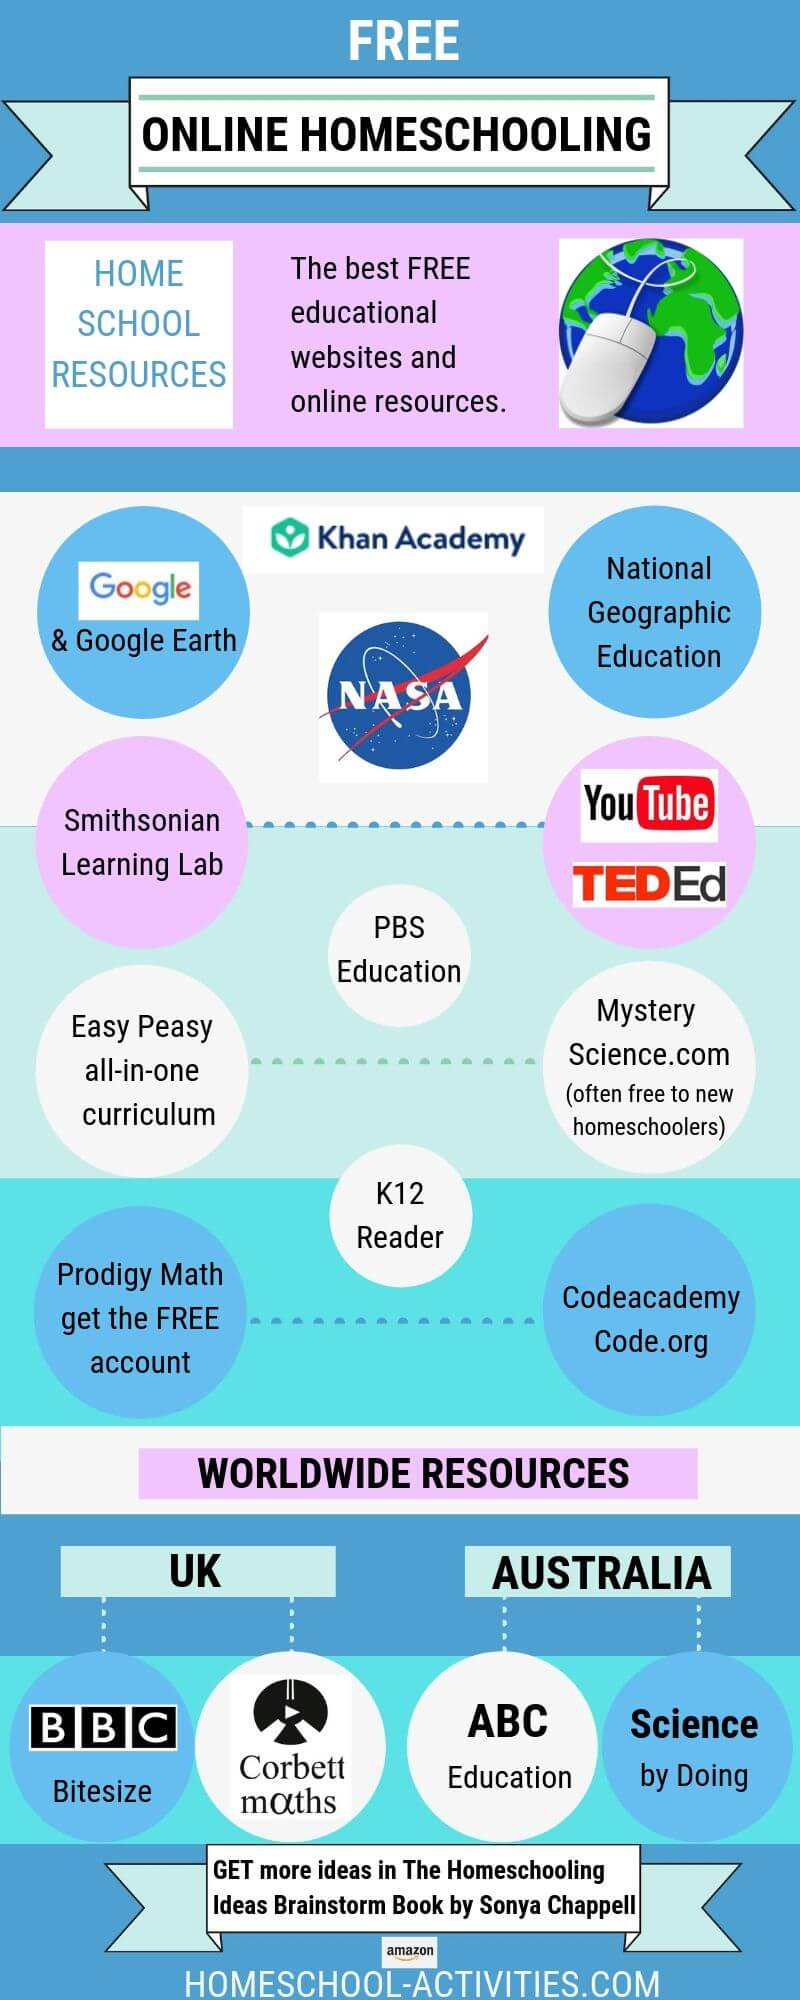 Online homeschooling resources